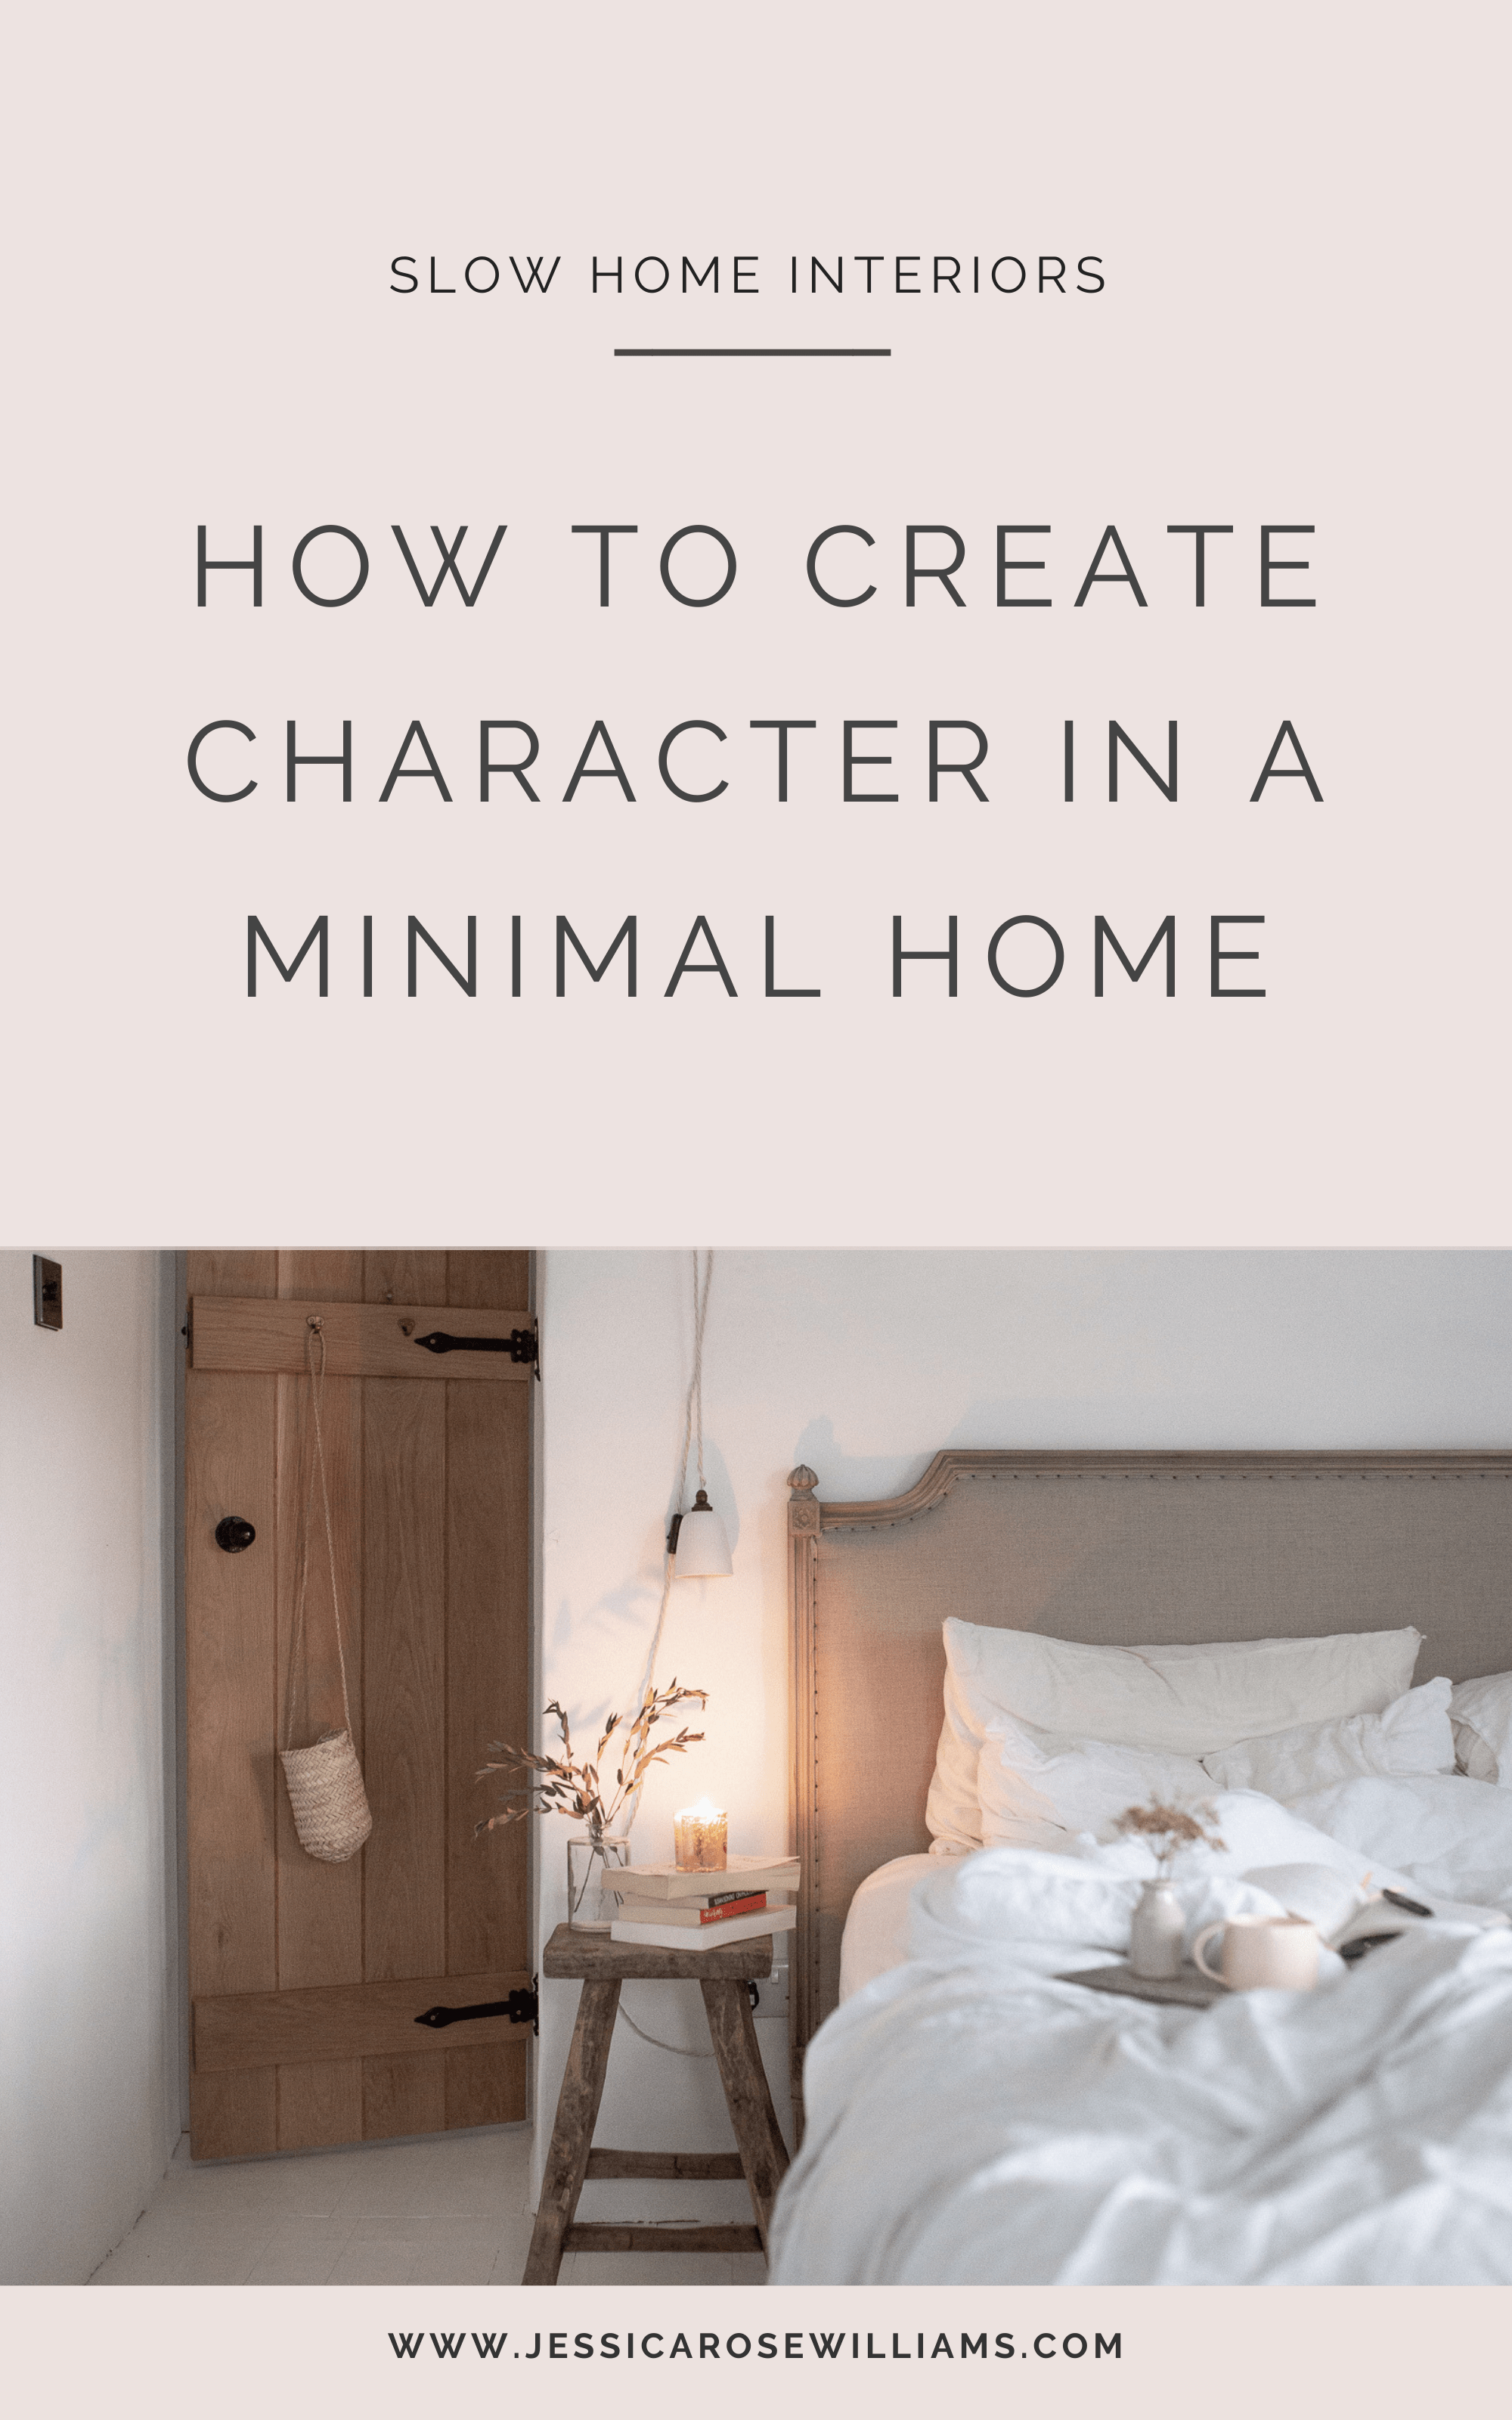 create character in a minimal home - Jessica Rose Williams #minimalhome #slowliving #simplehomeinterior